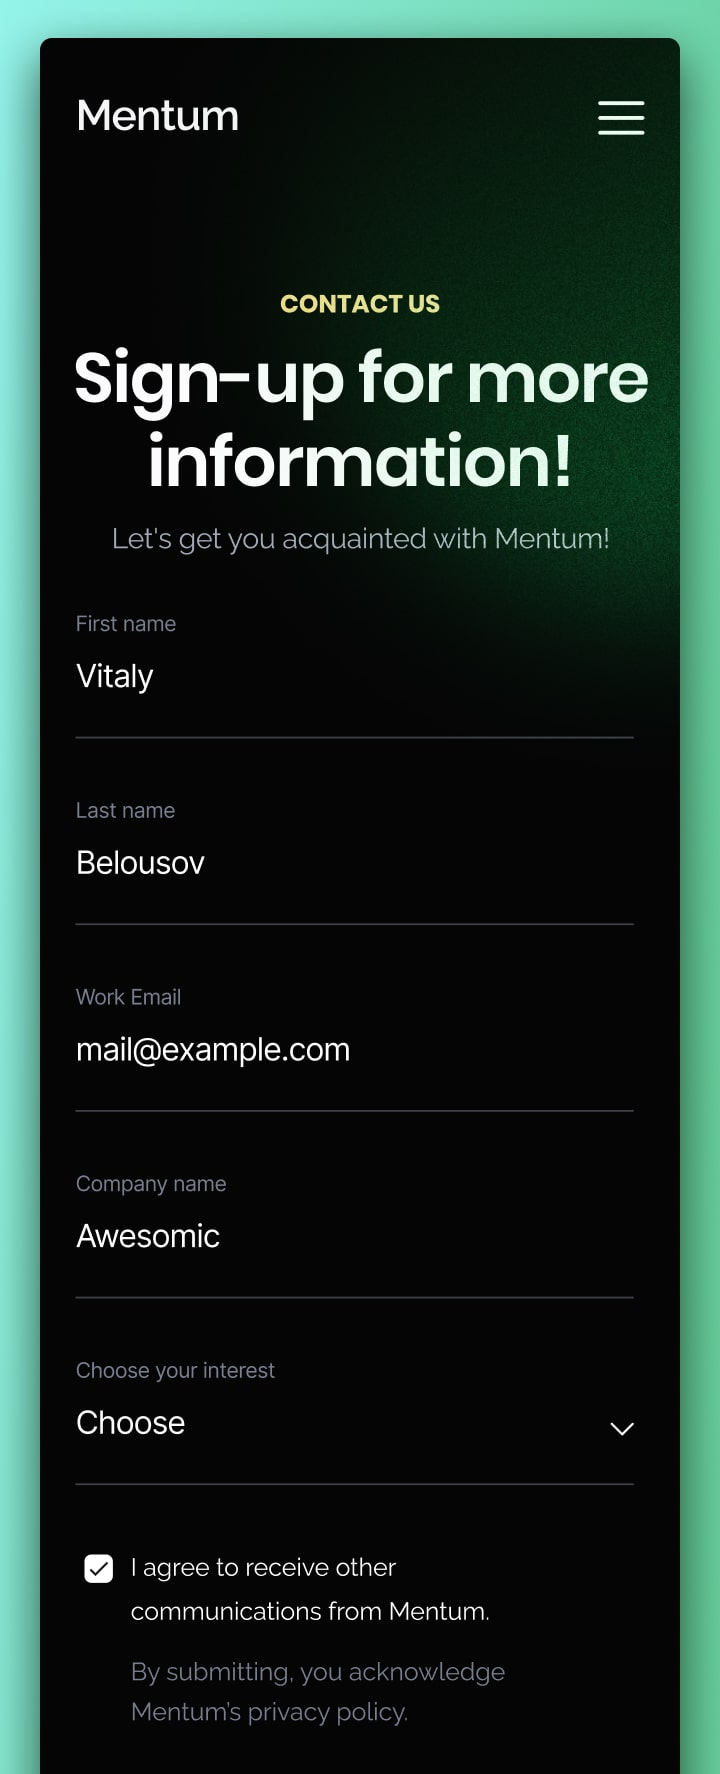 Mentum sign-up mobile